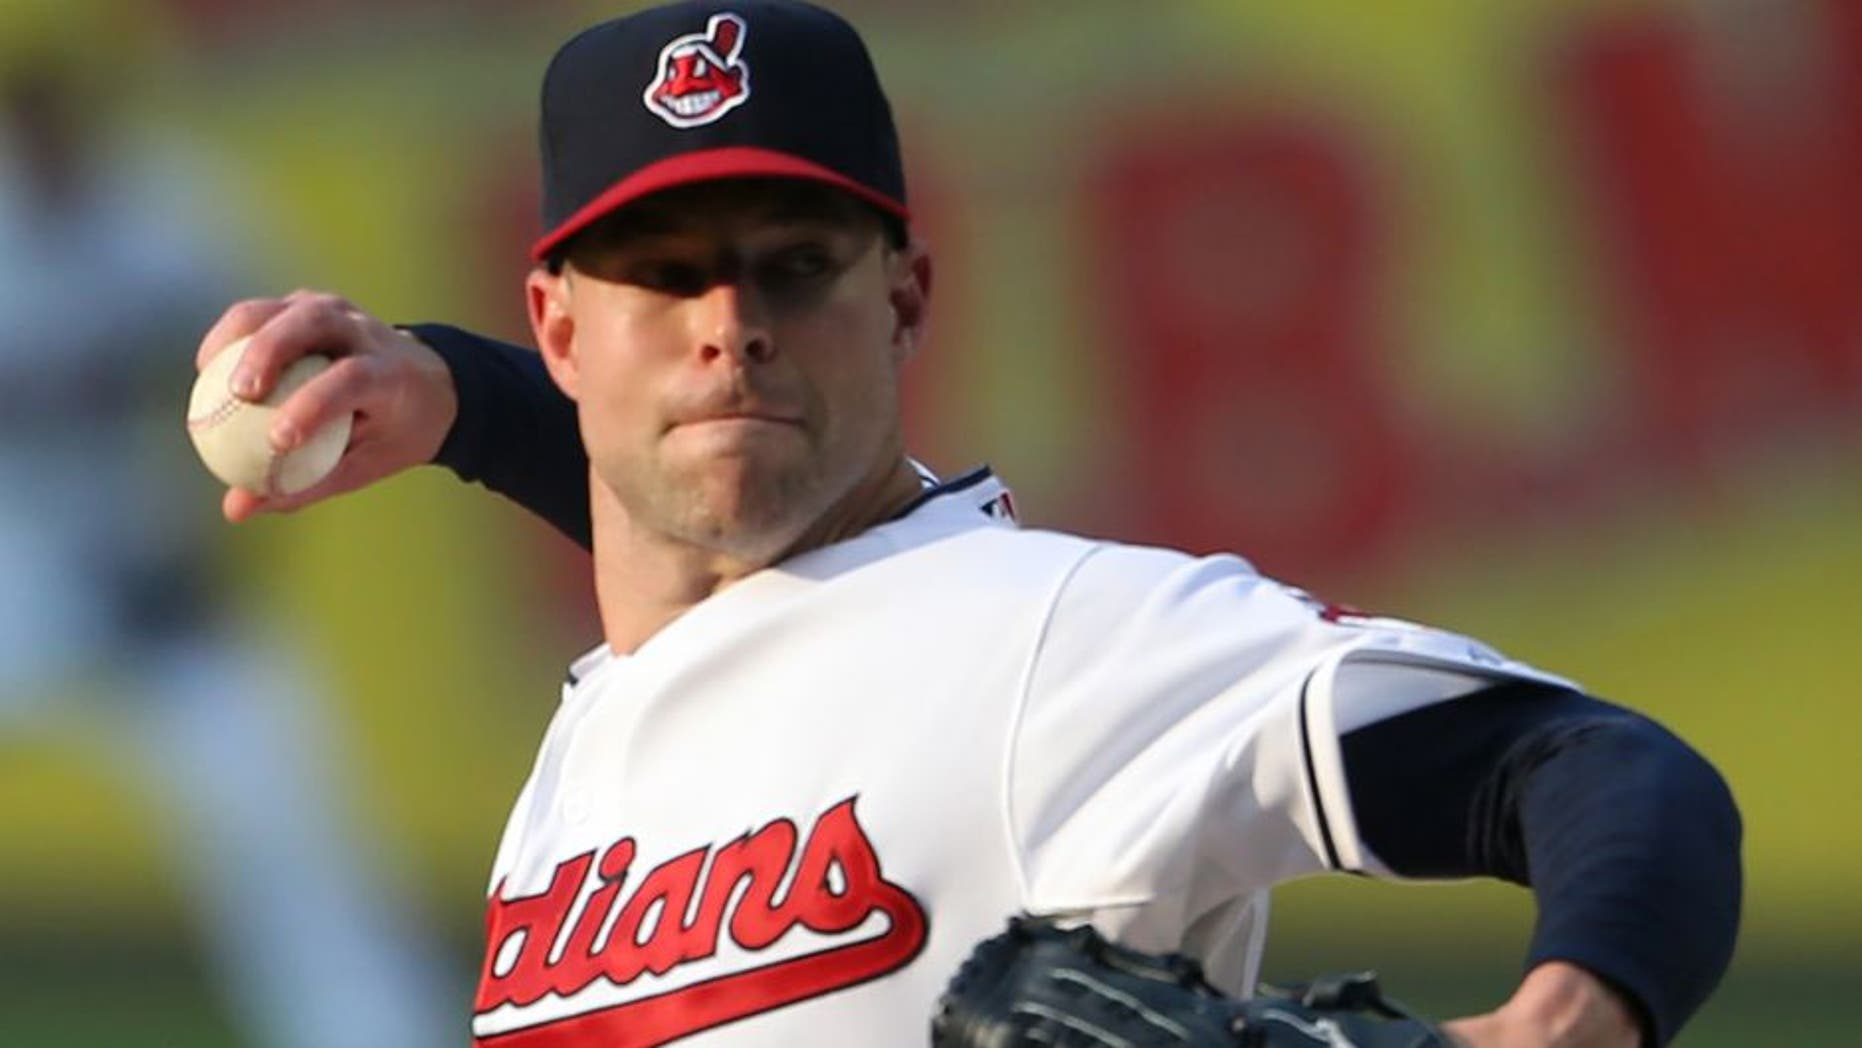 Cleveland Indians starting pitcher Corey Kluber pitches to Seattle Mariners' Austin Jackson during the first inning of a baseball game, Tuesday, June 9, 2015, in Cleveland. (AP Photo/Ron Schwane)